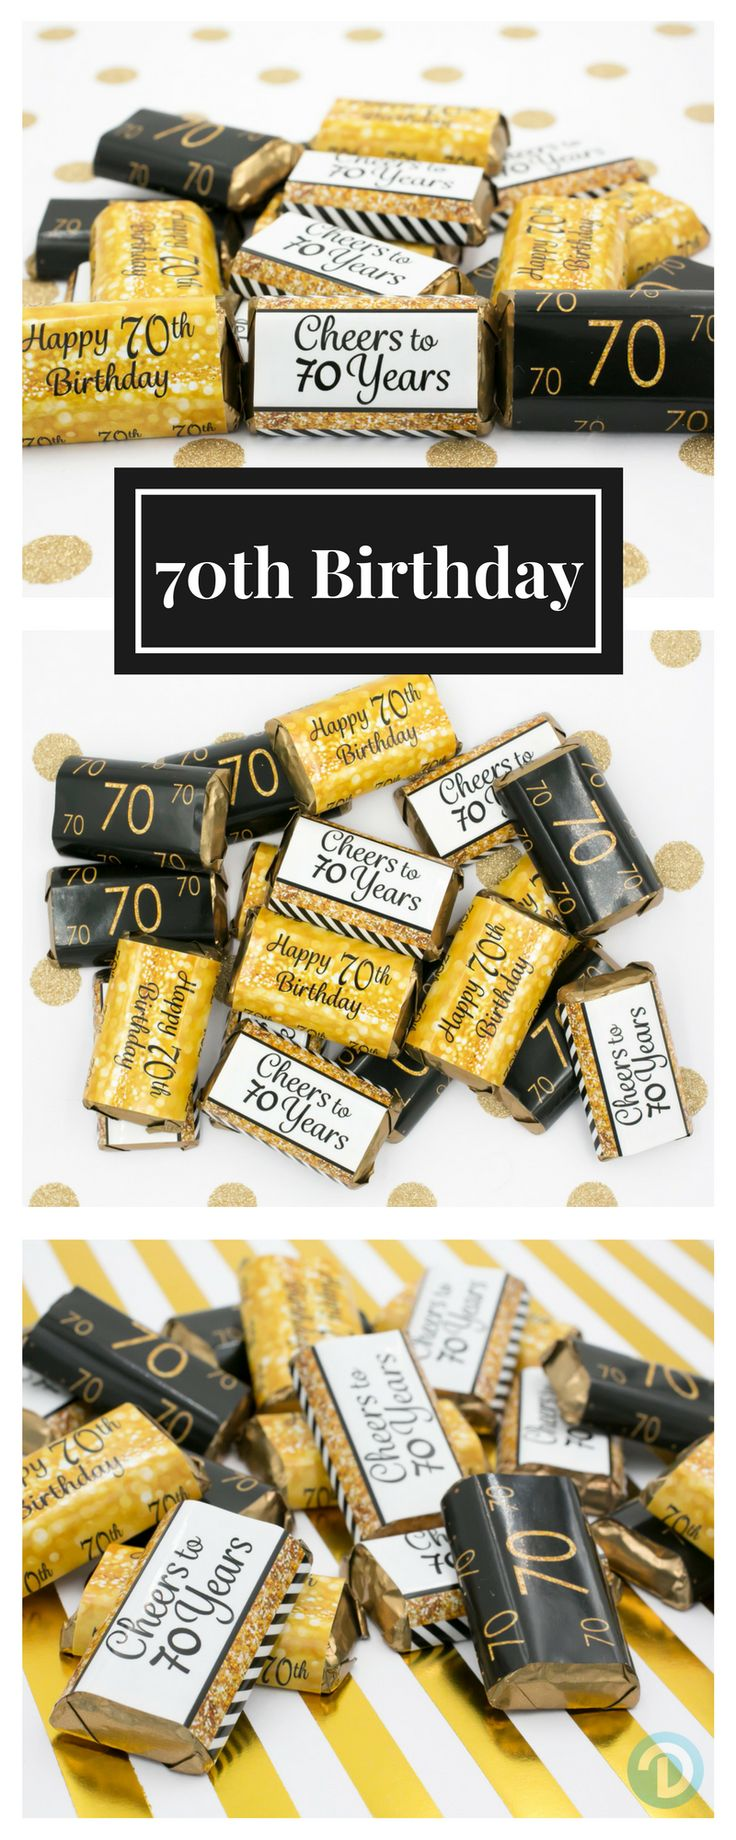 Decoration ideas for 50th wedding anniversary celebration   best images about th birthday ideas on Pinterest  th